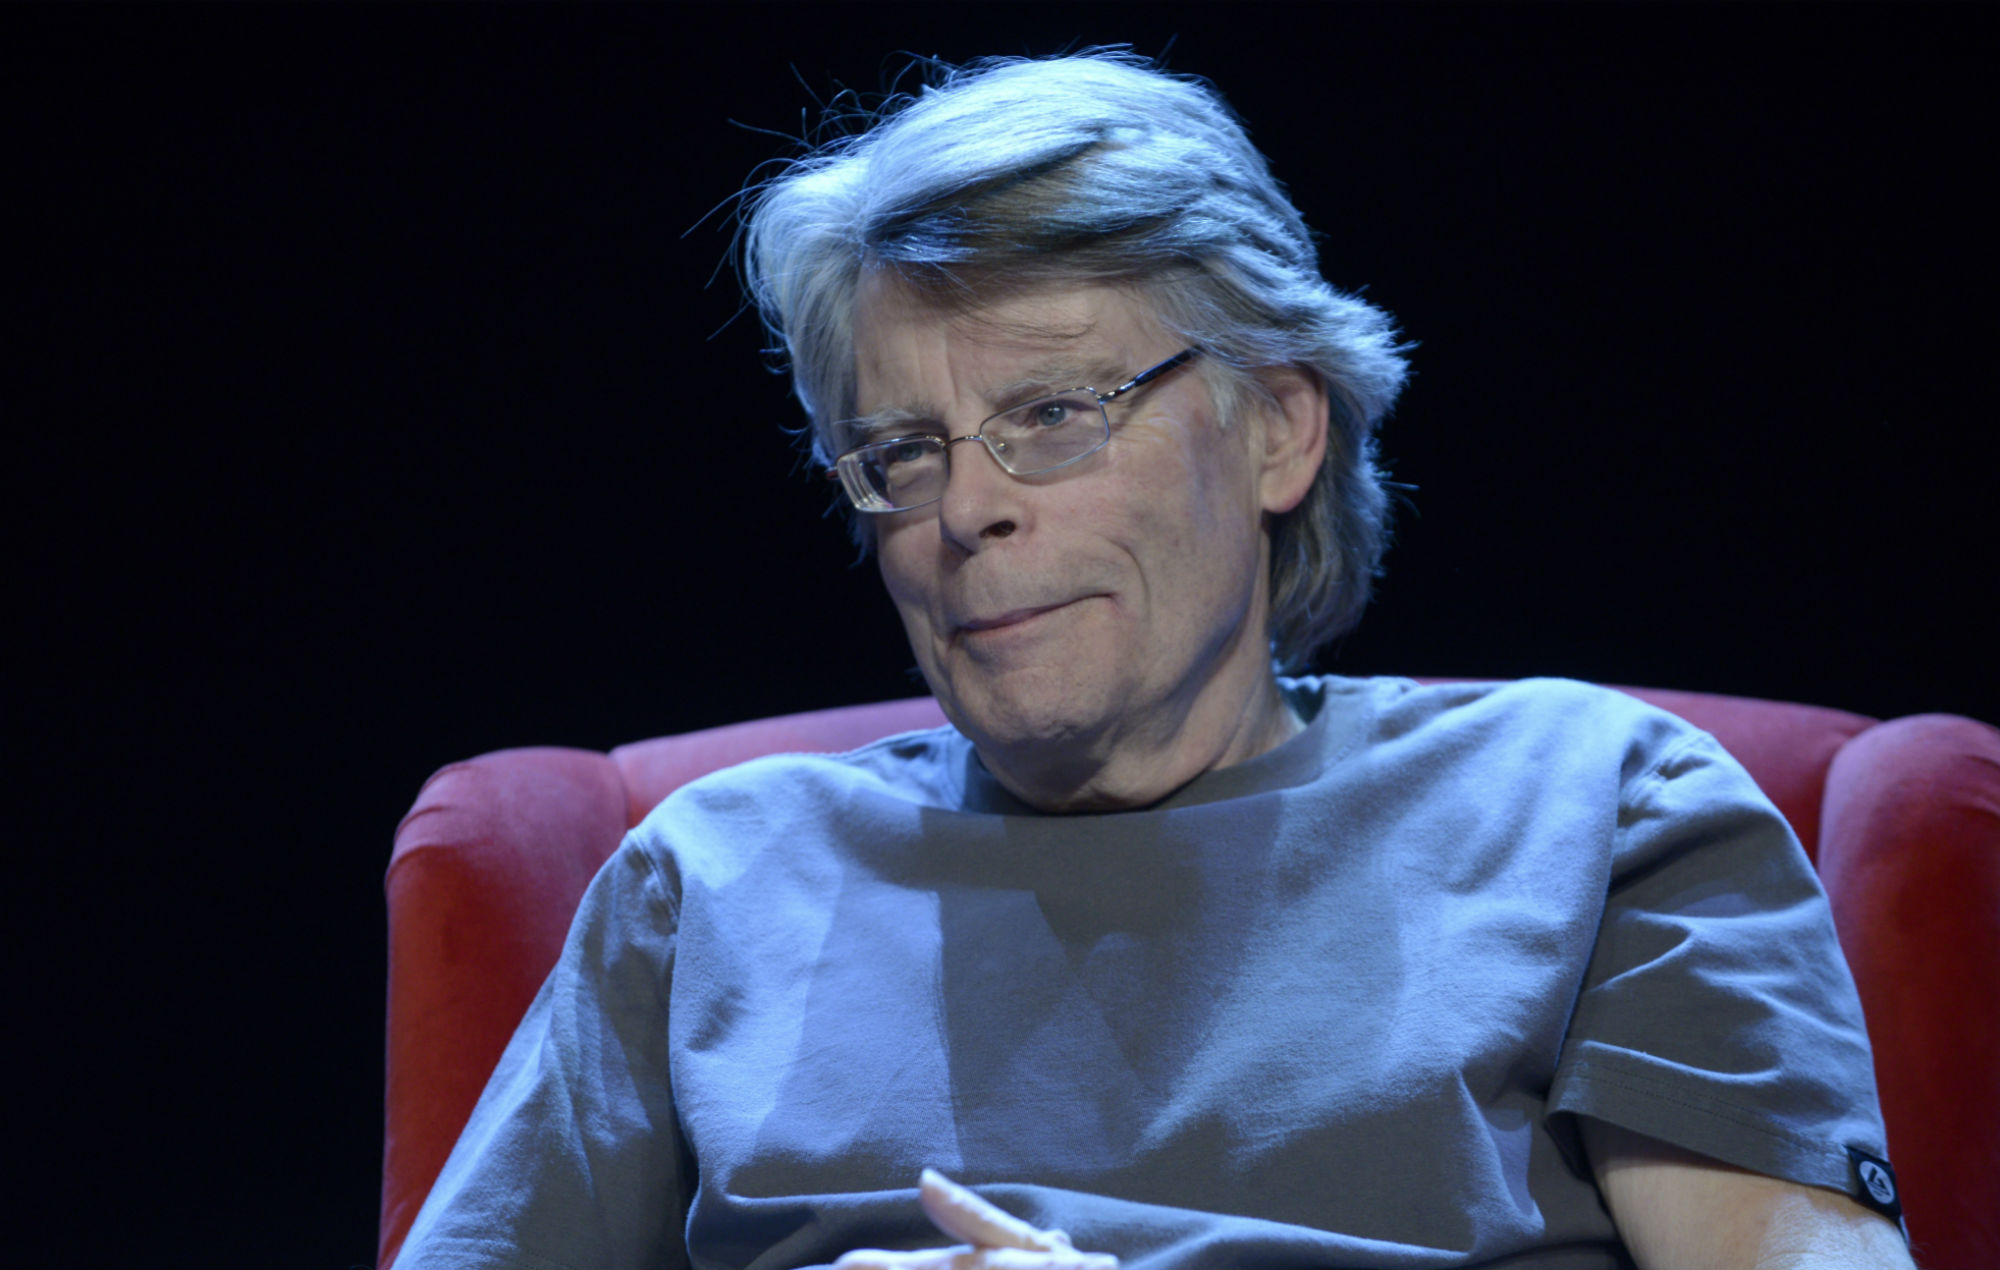 """Stephen King says the Oscars are """"rigged in favour of white folks"""""""